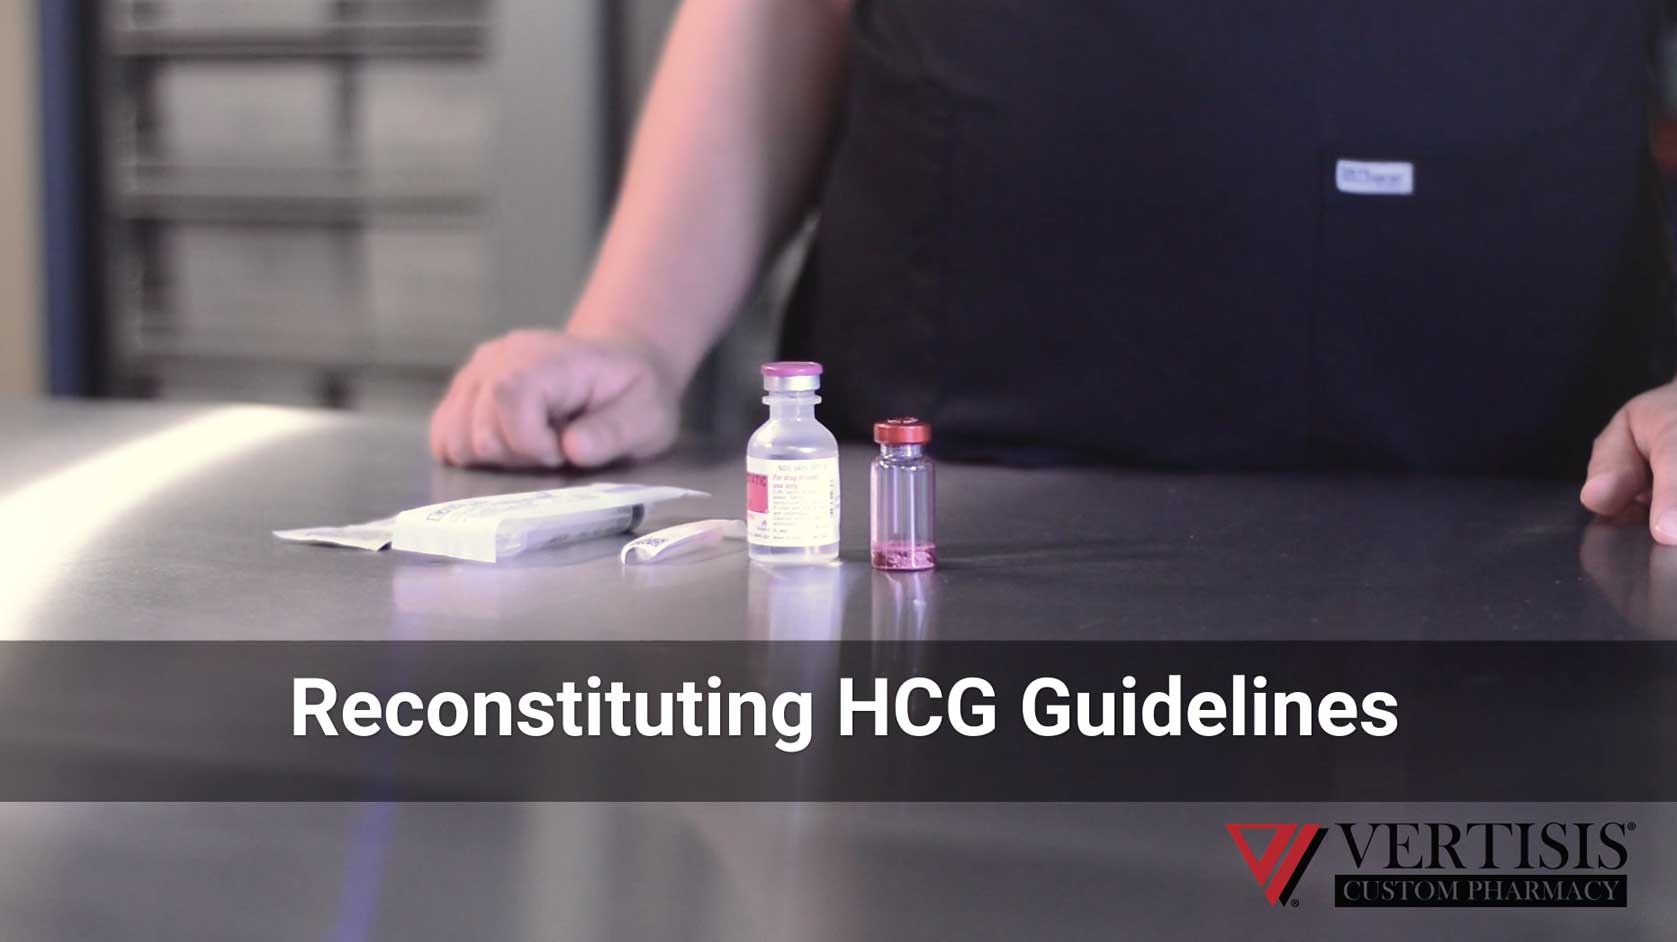 HCG Reconstitution Guidelines